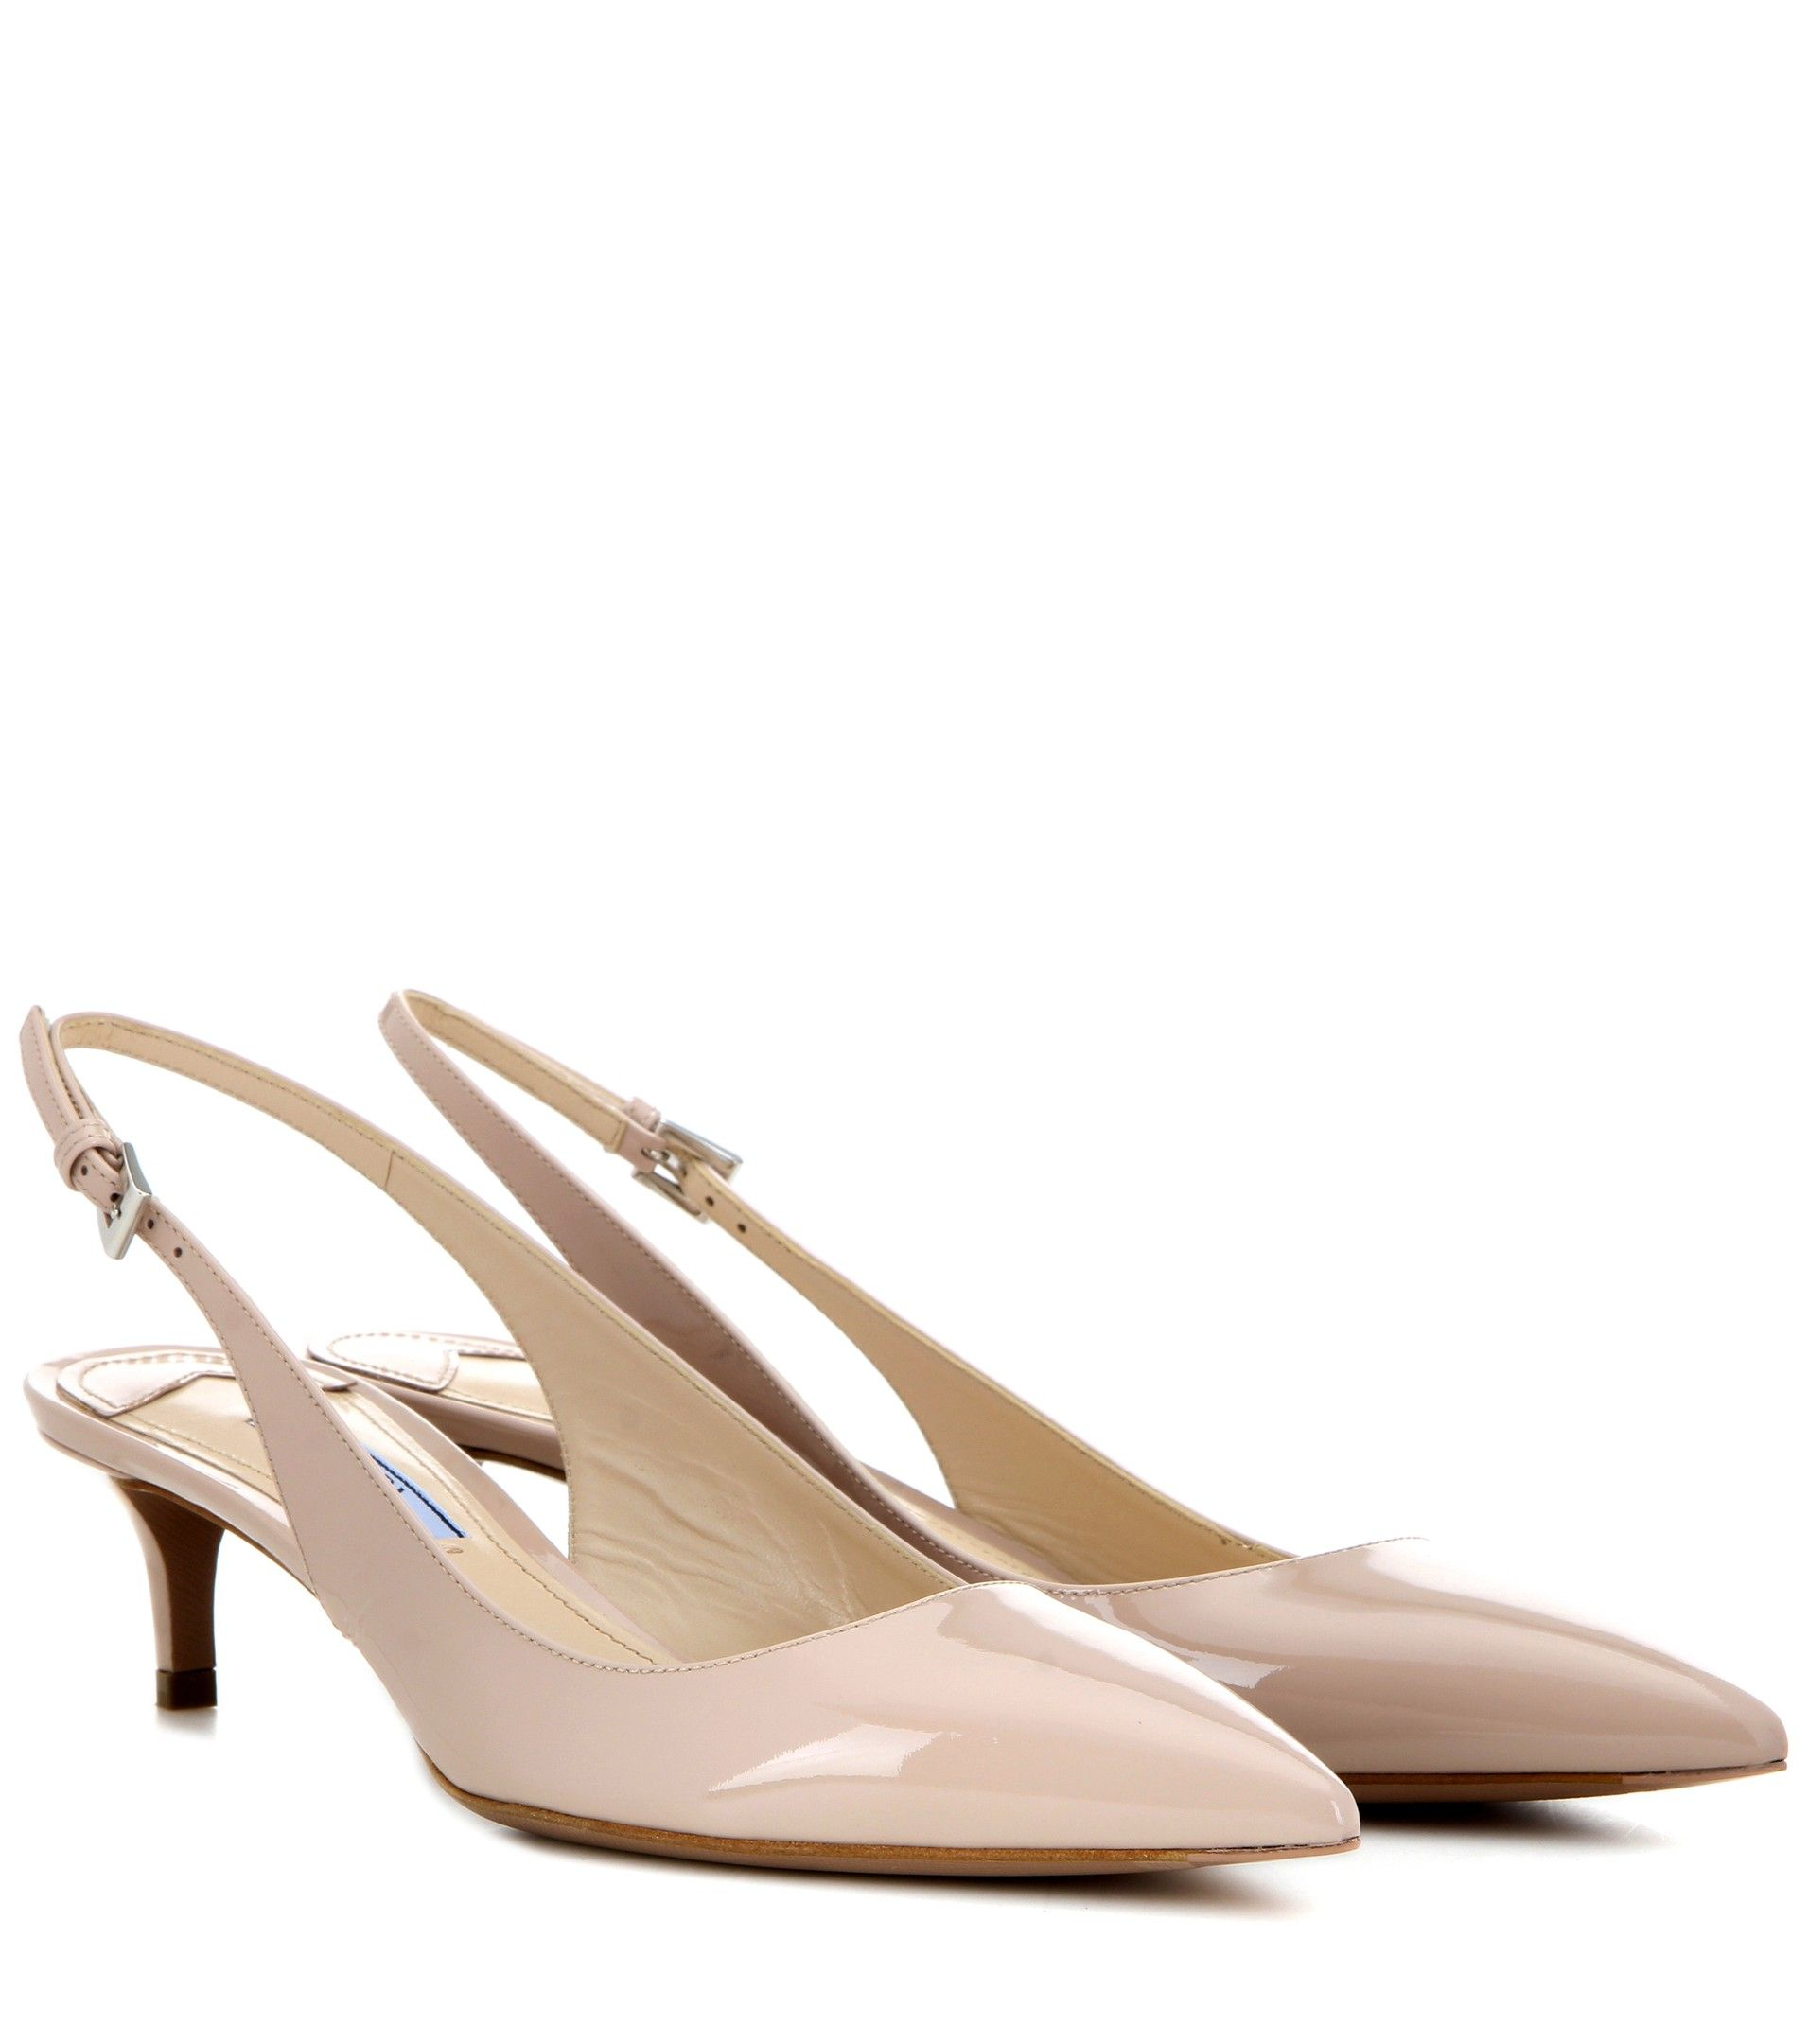 Prada Patent leather slingback pumps phUK1TxHG